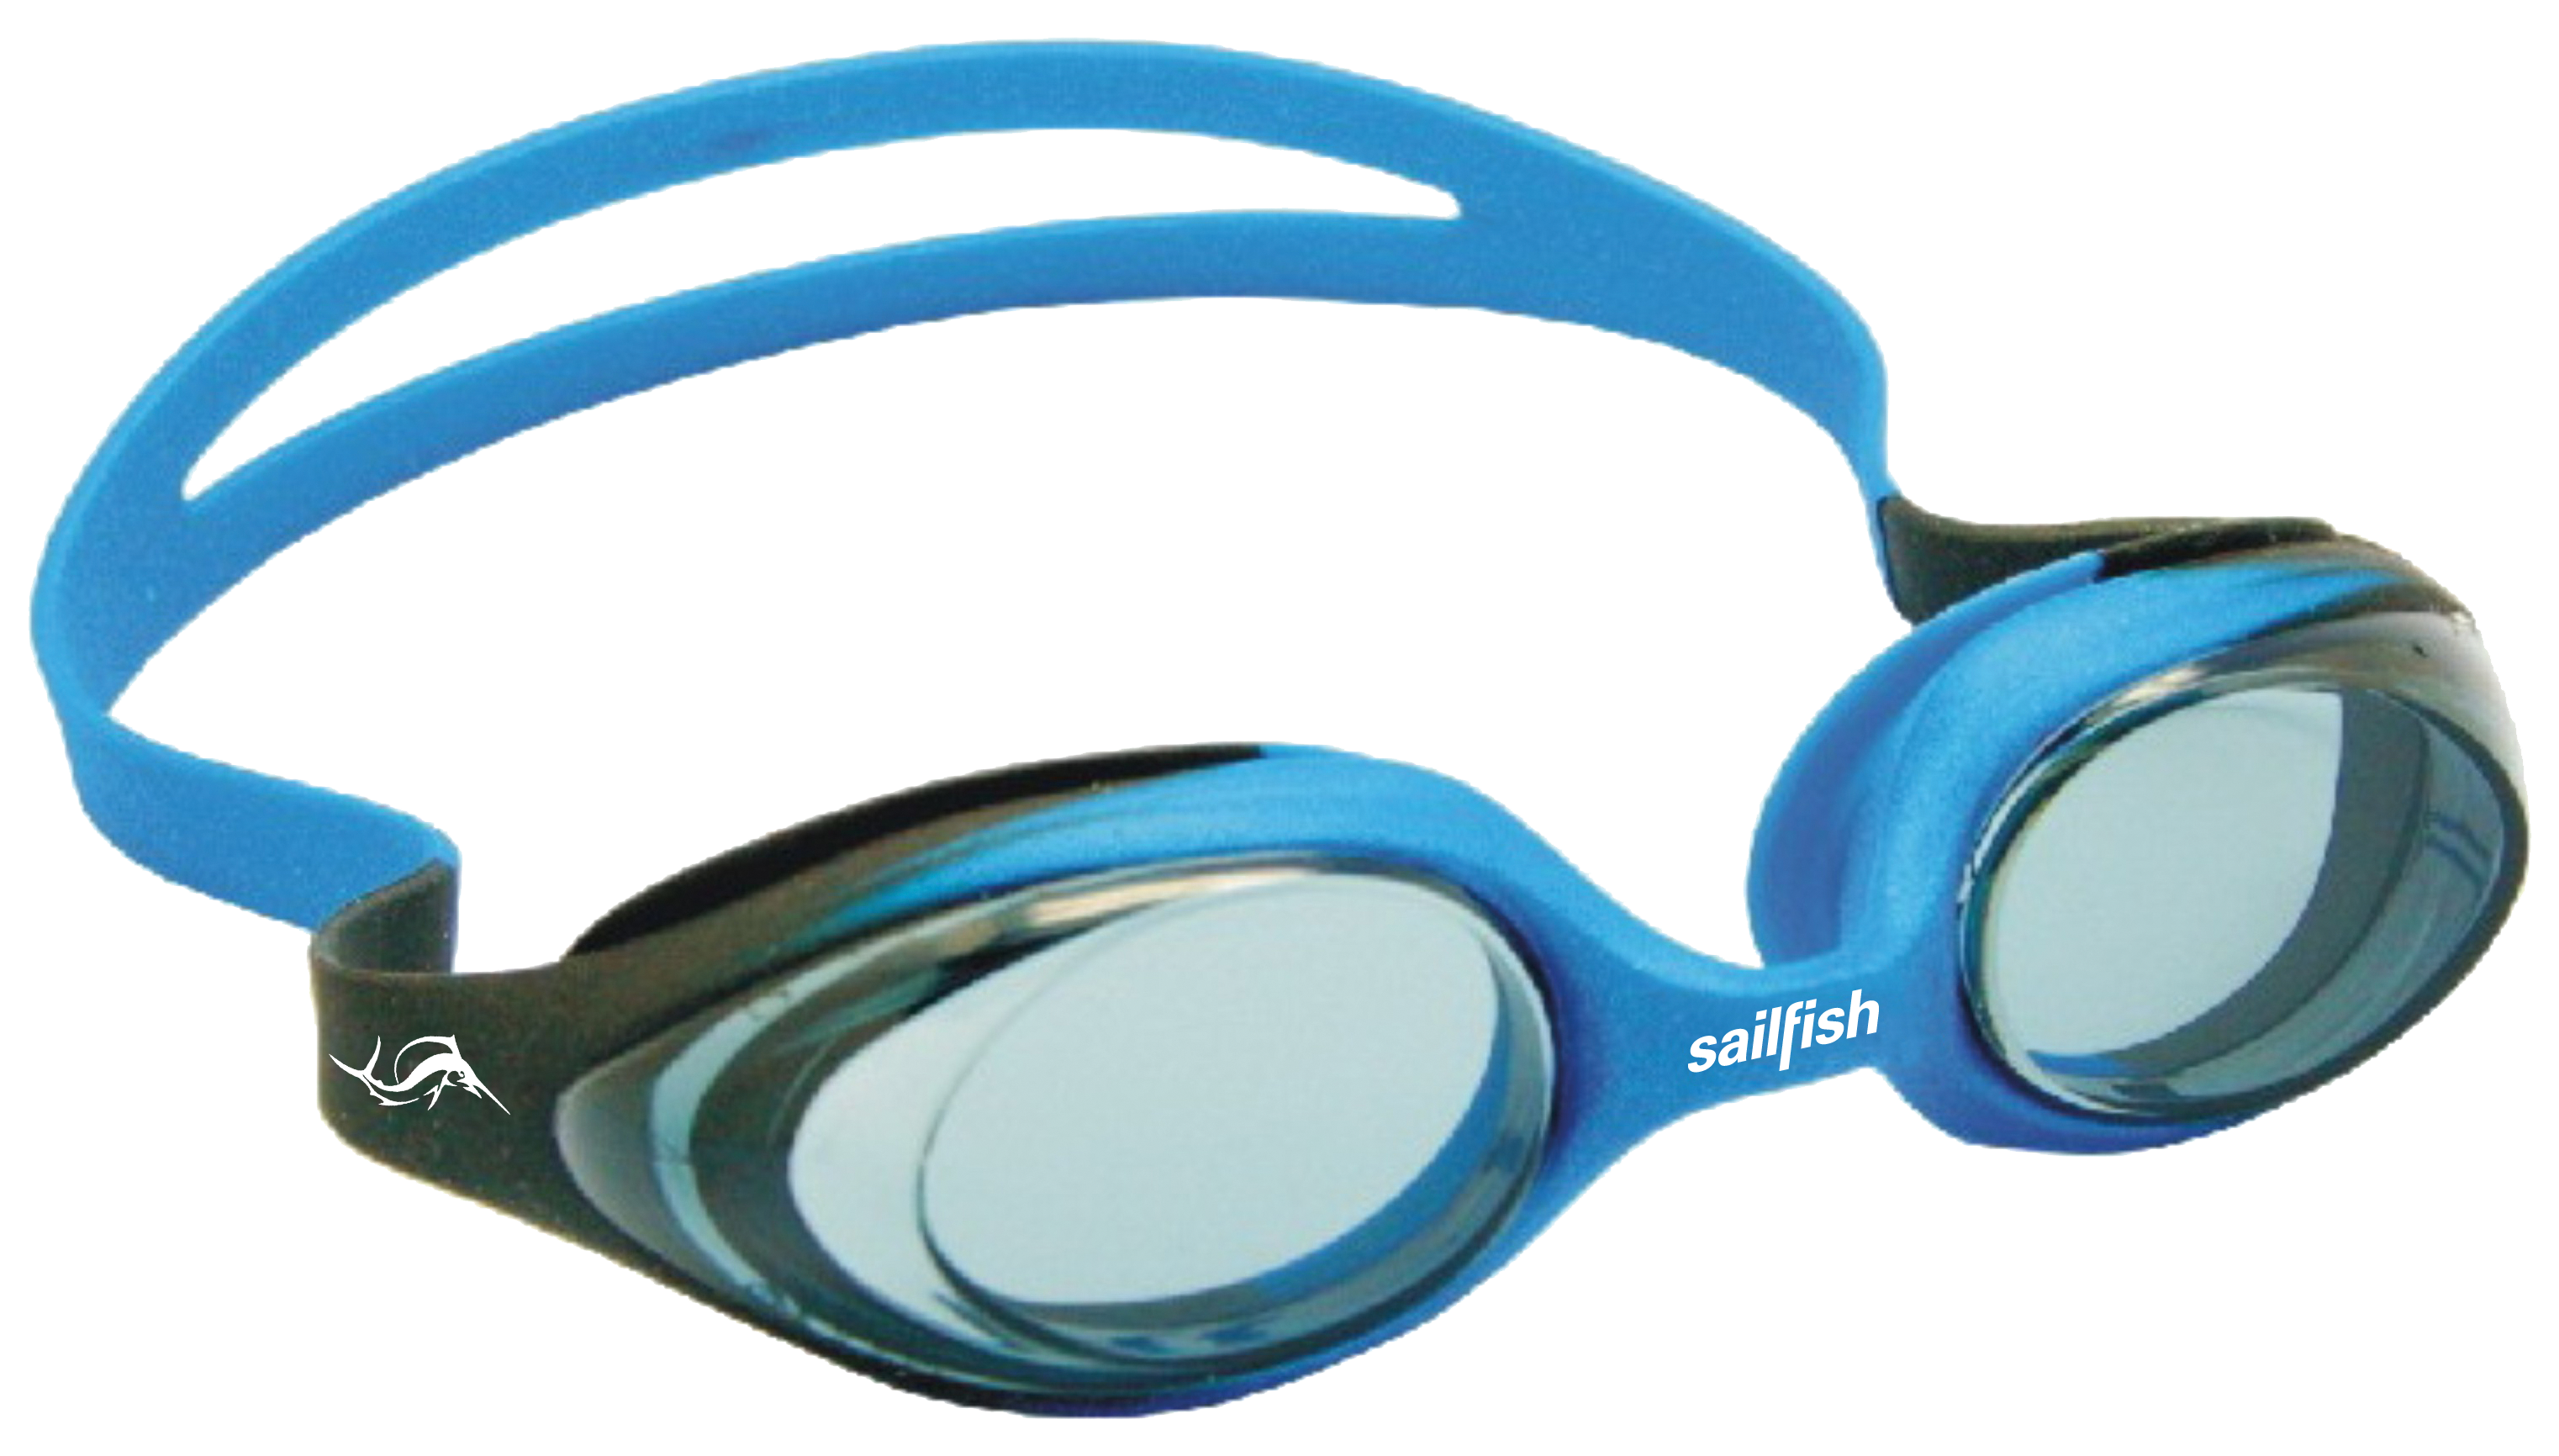 Swimming Goggles PNG - 51661